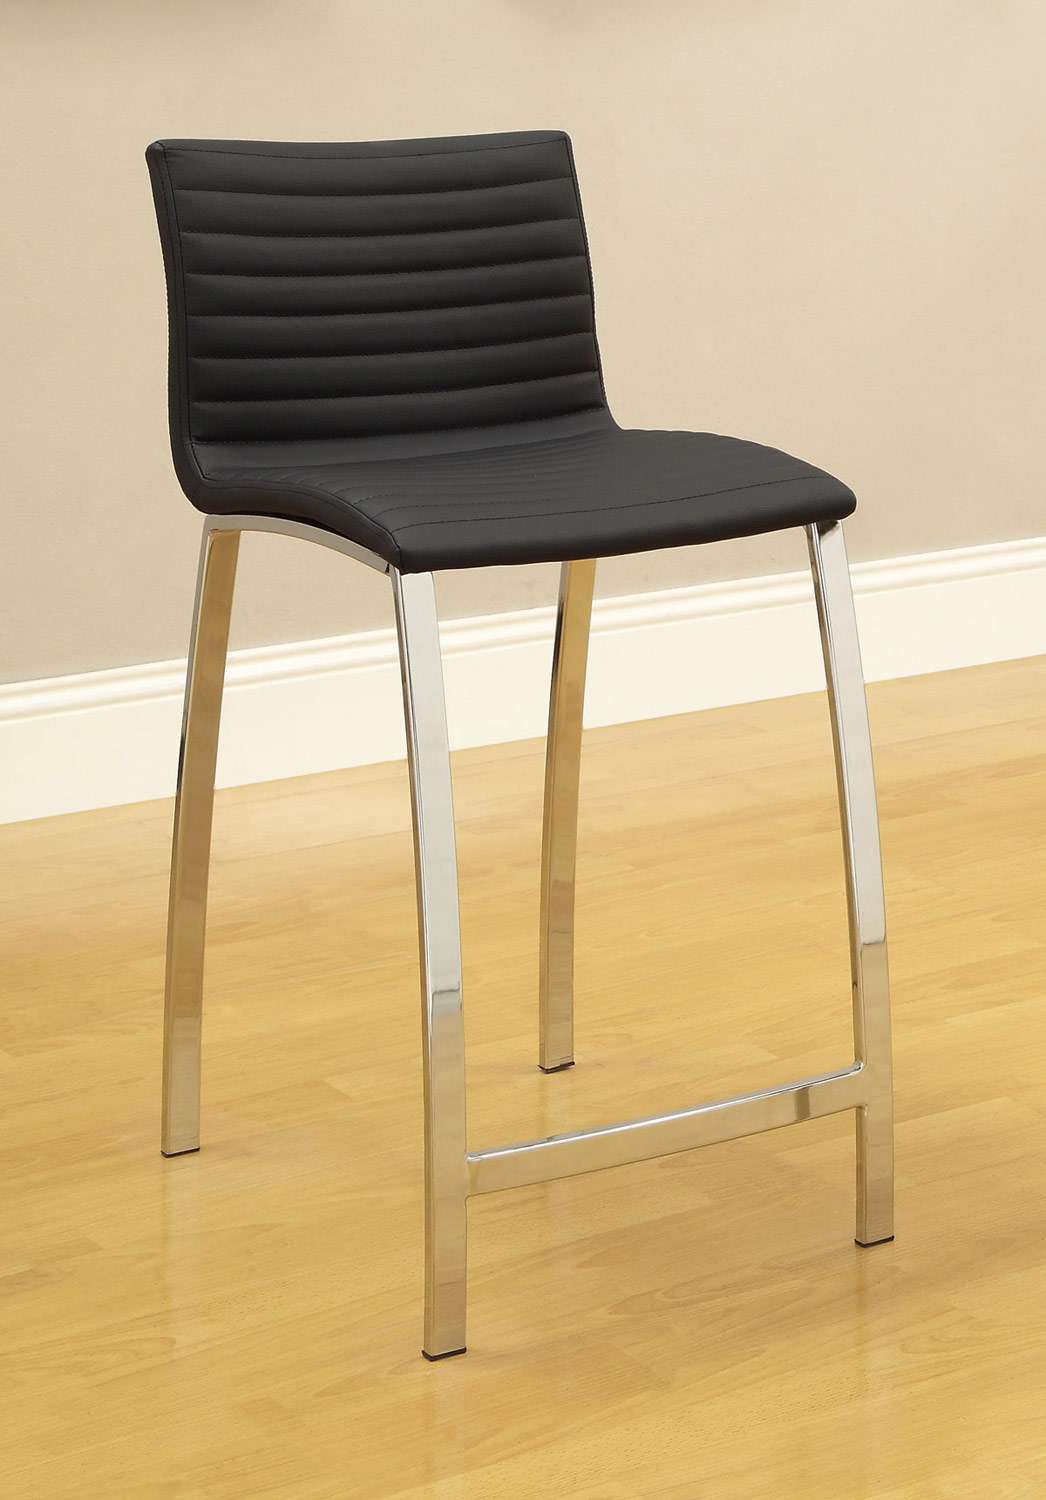 Coaster Ribbed Counter Height Stool - Black 120889